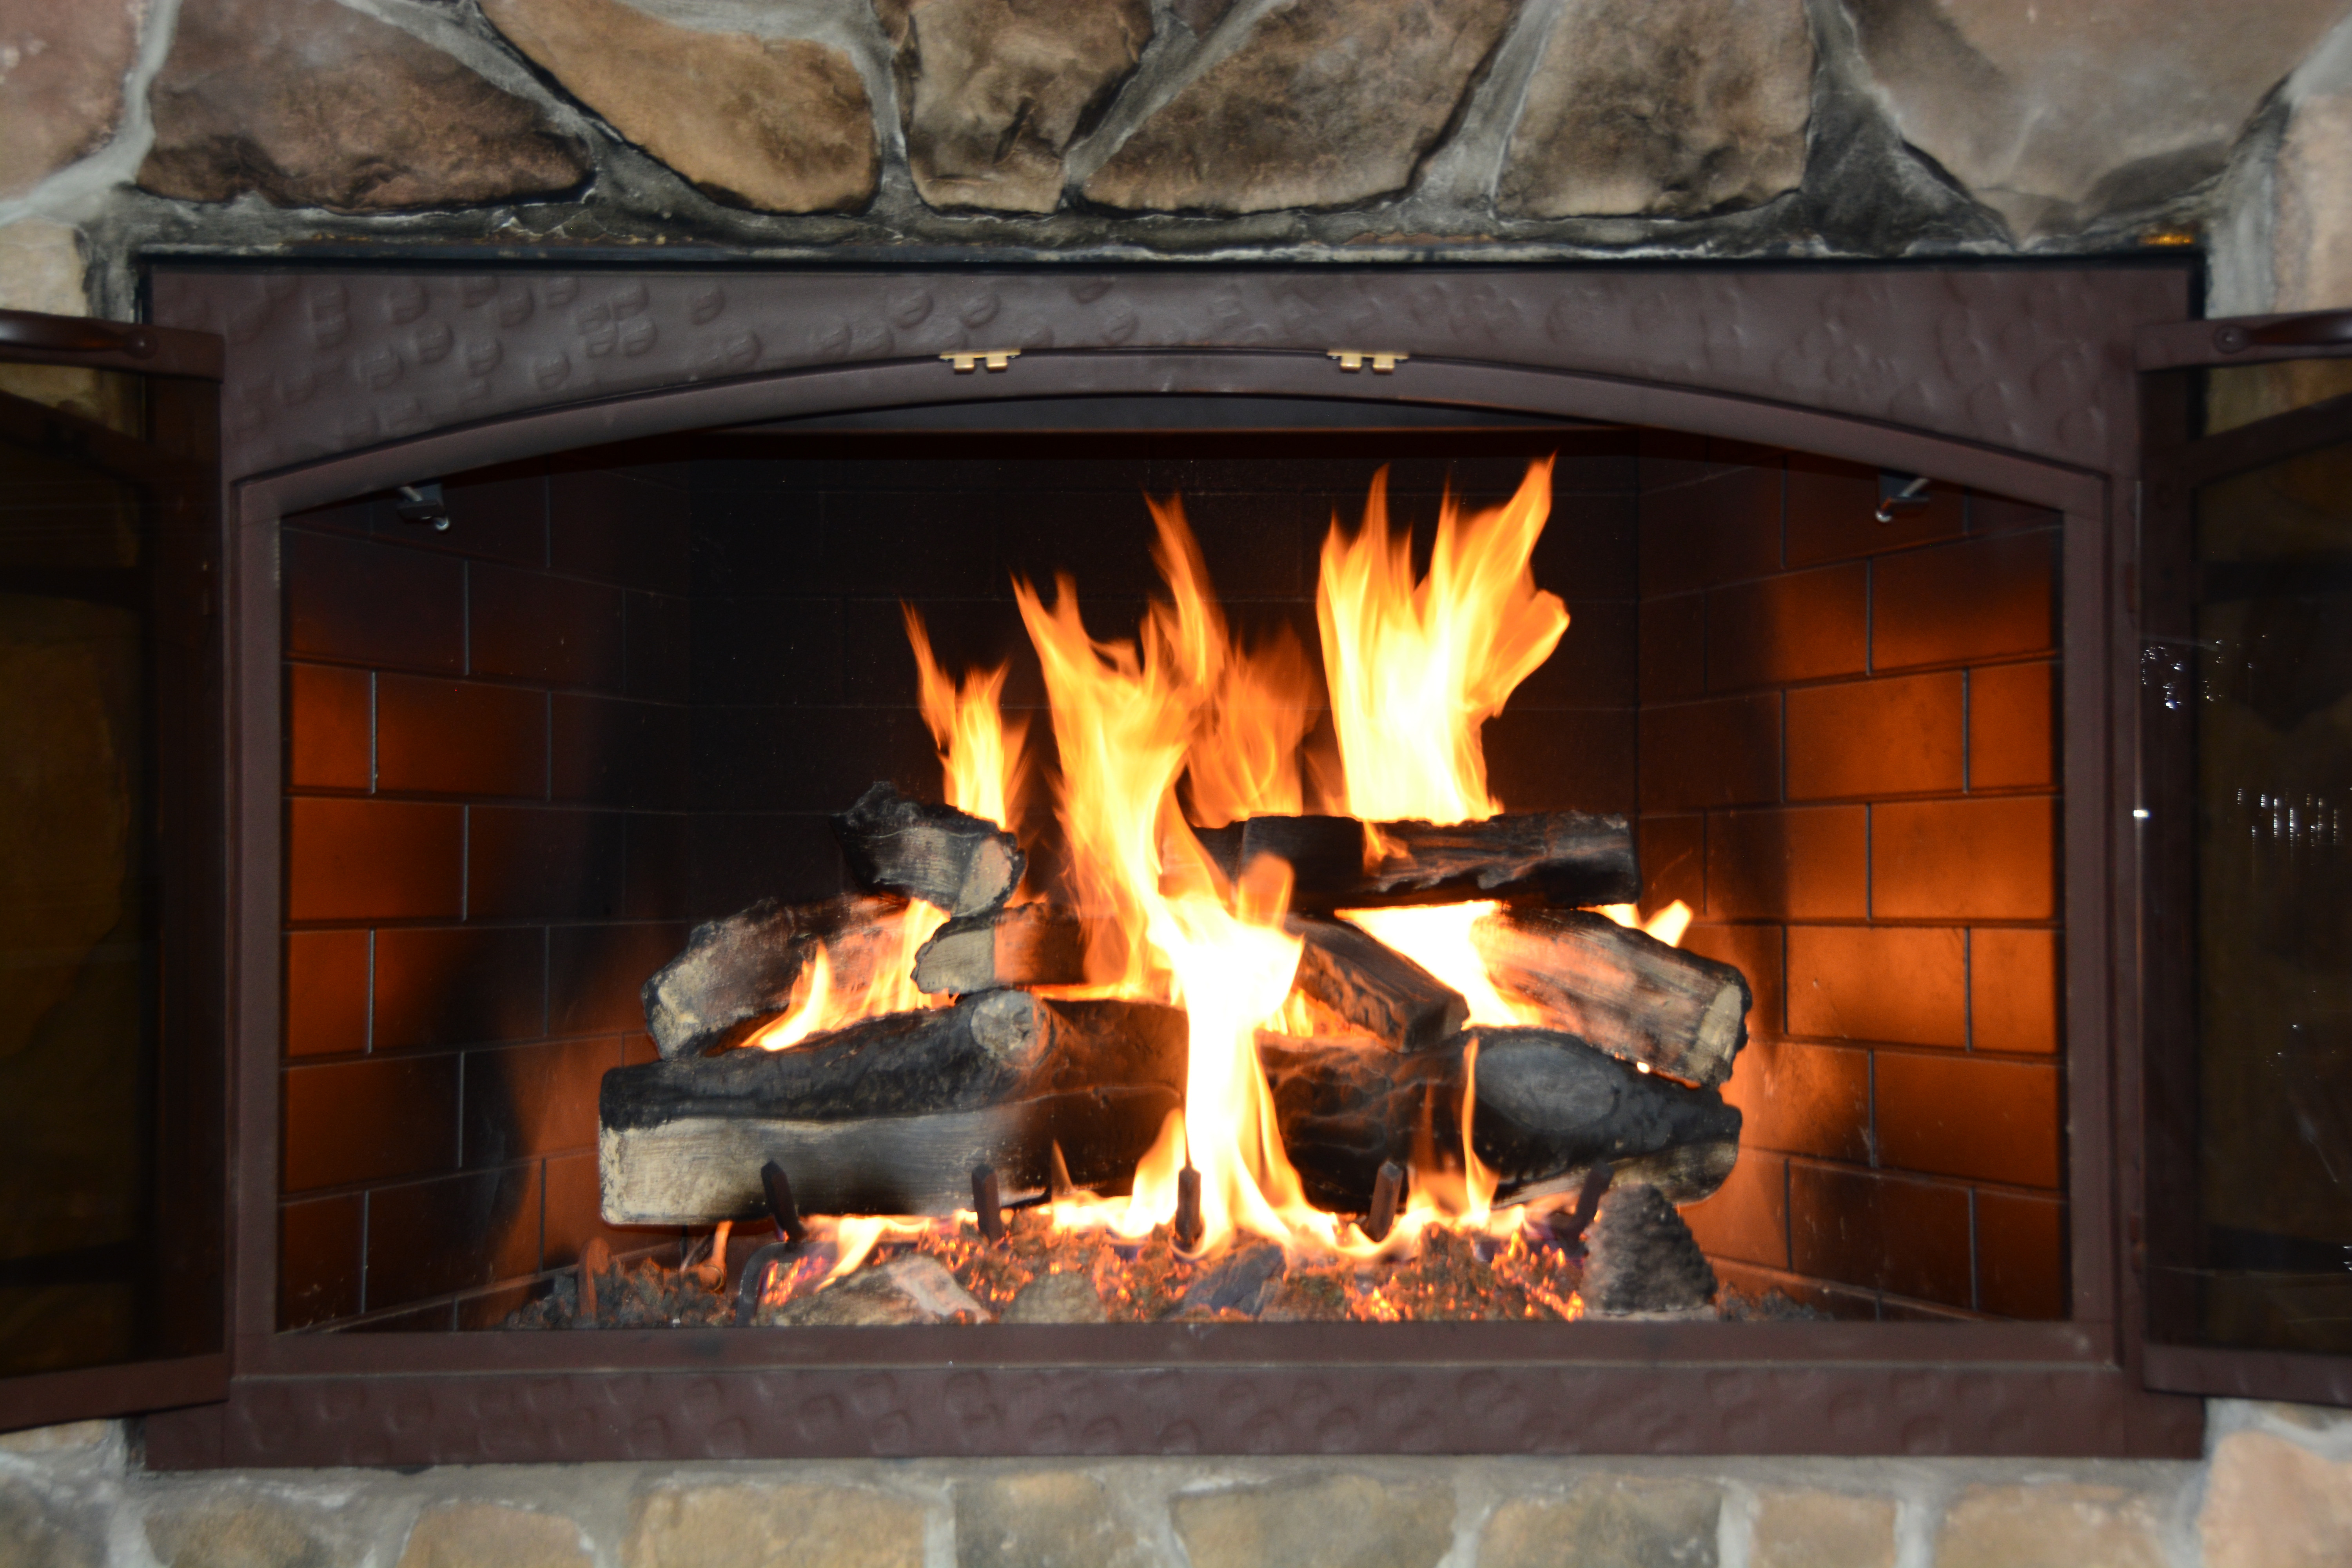 Best ideas about Fireplace Gas Logs . Save or Pin Fireplace Gas Logs Country Stove Patio & Spa Now.